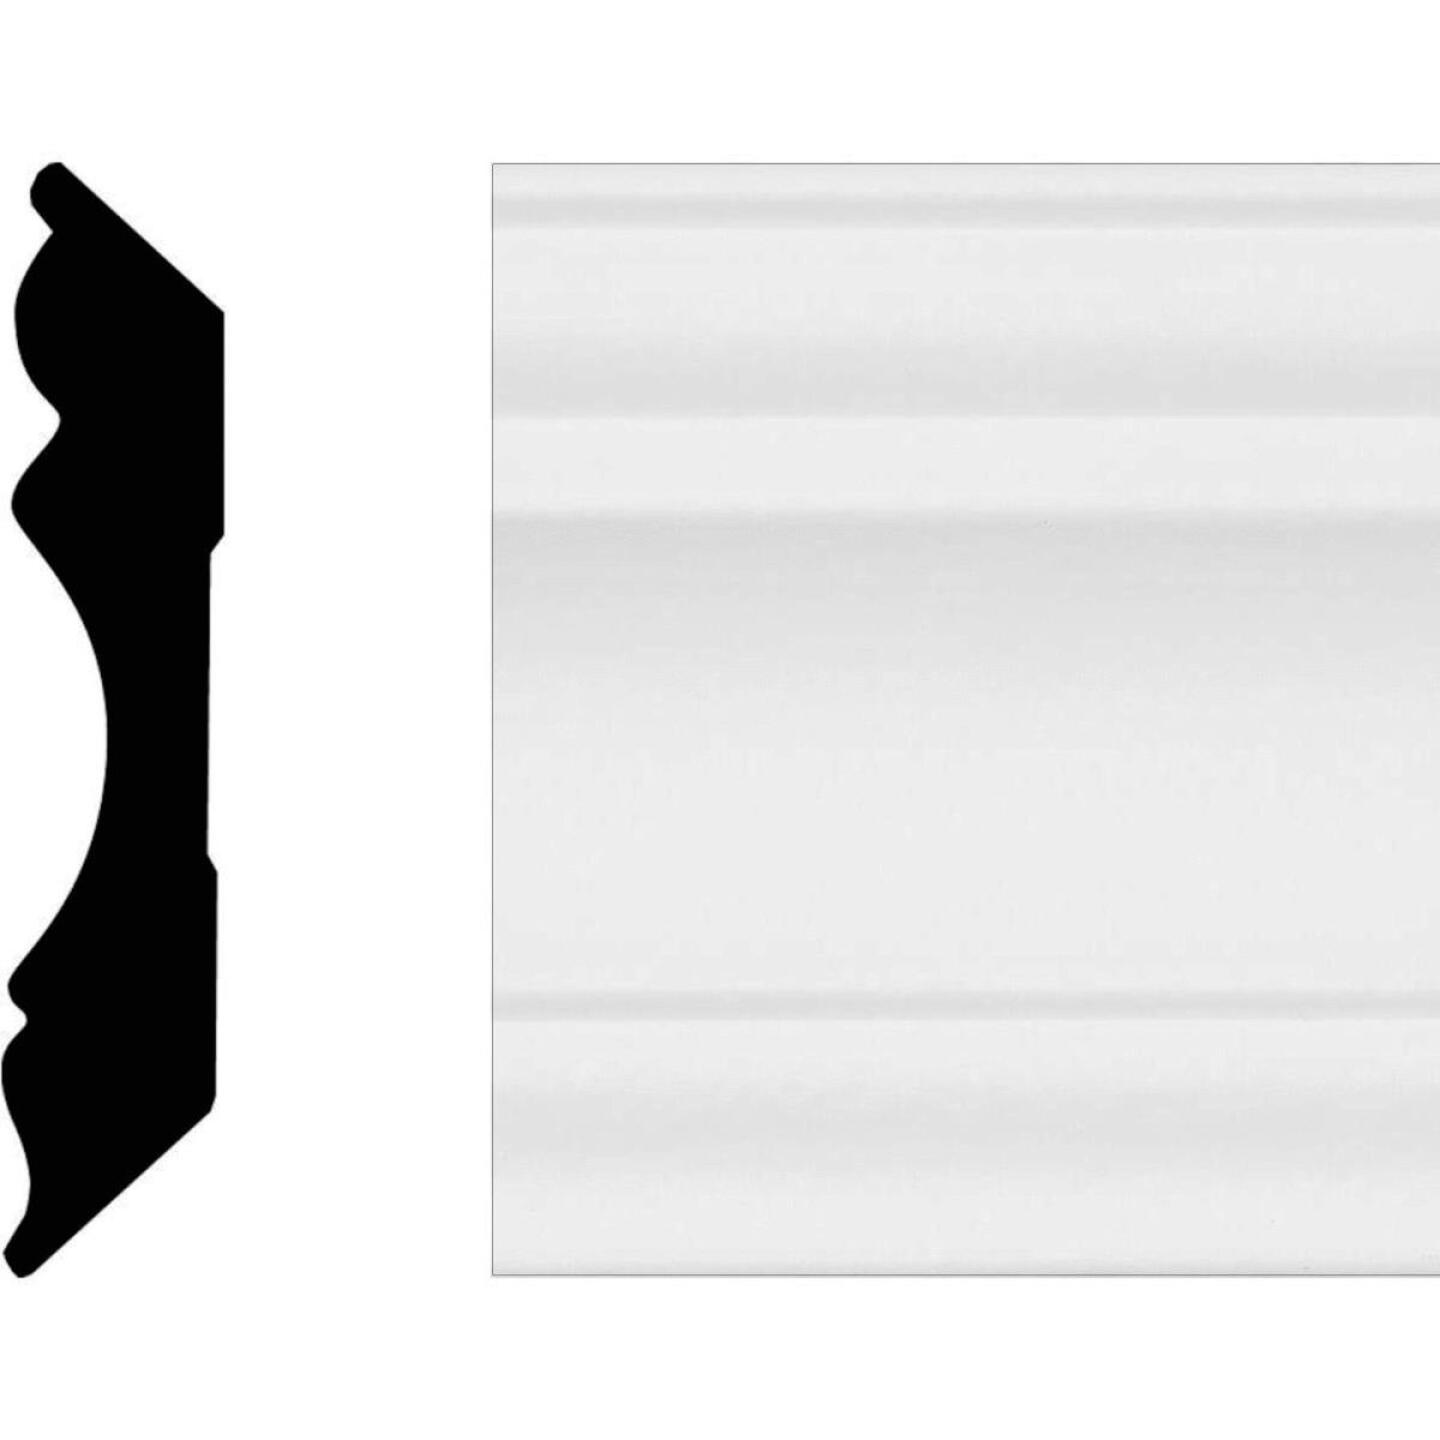 House of Fara 5/8 In. W. x 3-1/8 In. H. x 8 Ft. L. White MDF Colonial Crown Molding Image 1